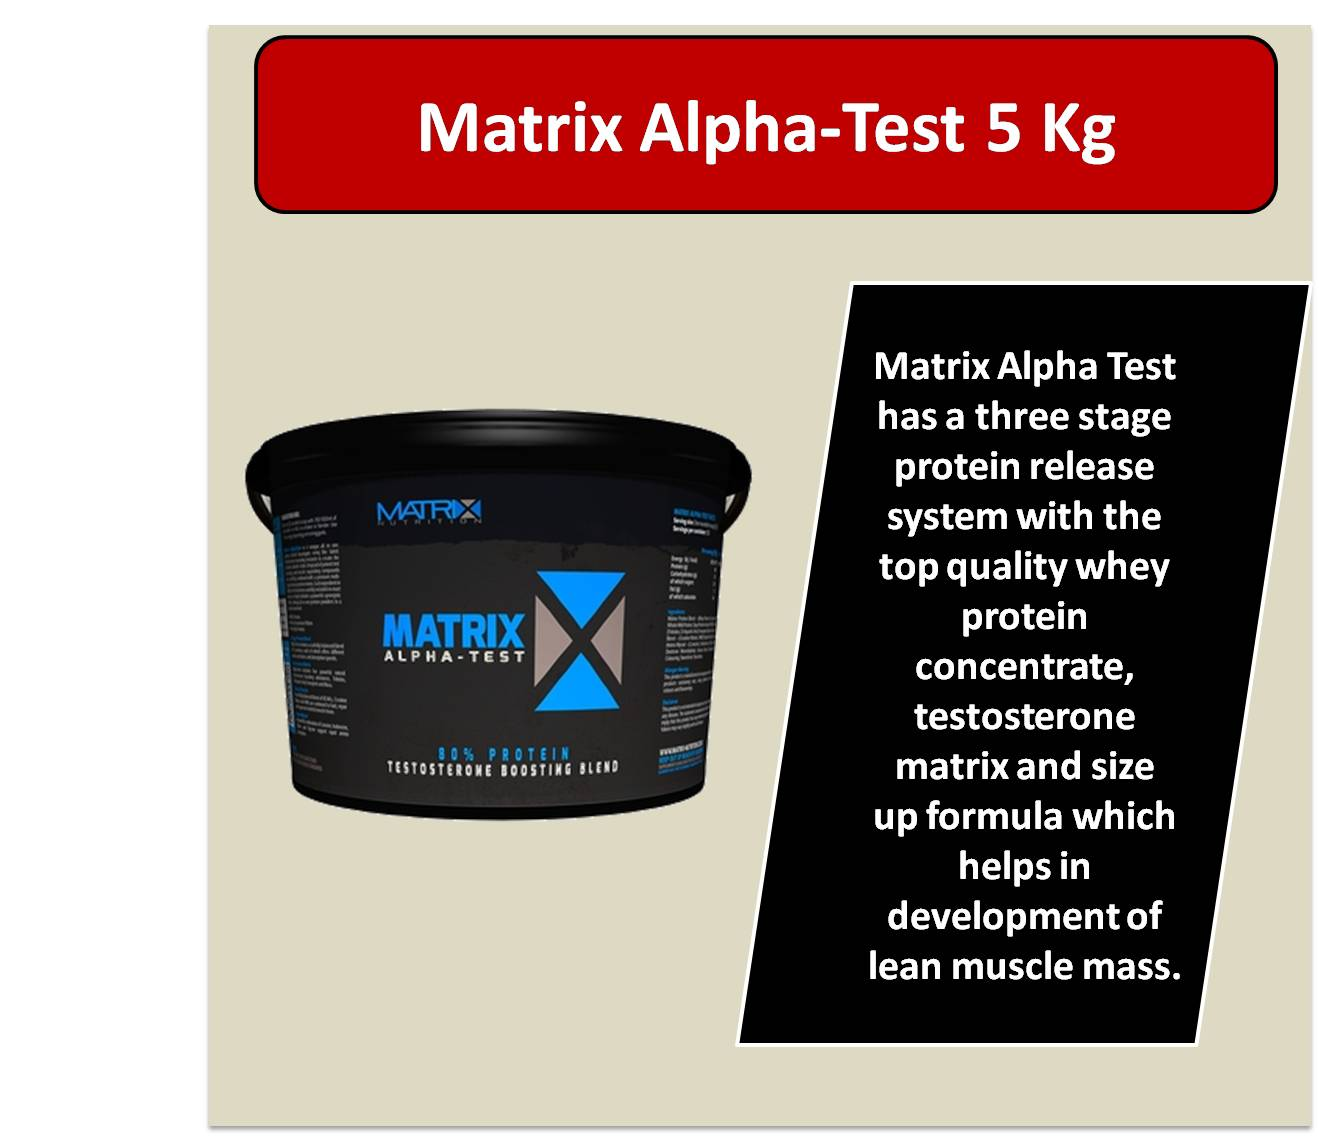 Matrix Alpha Test 5 Kg